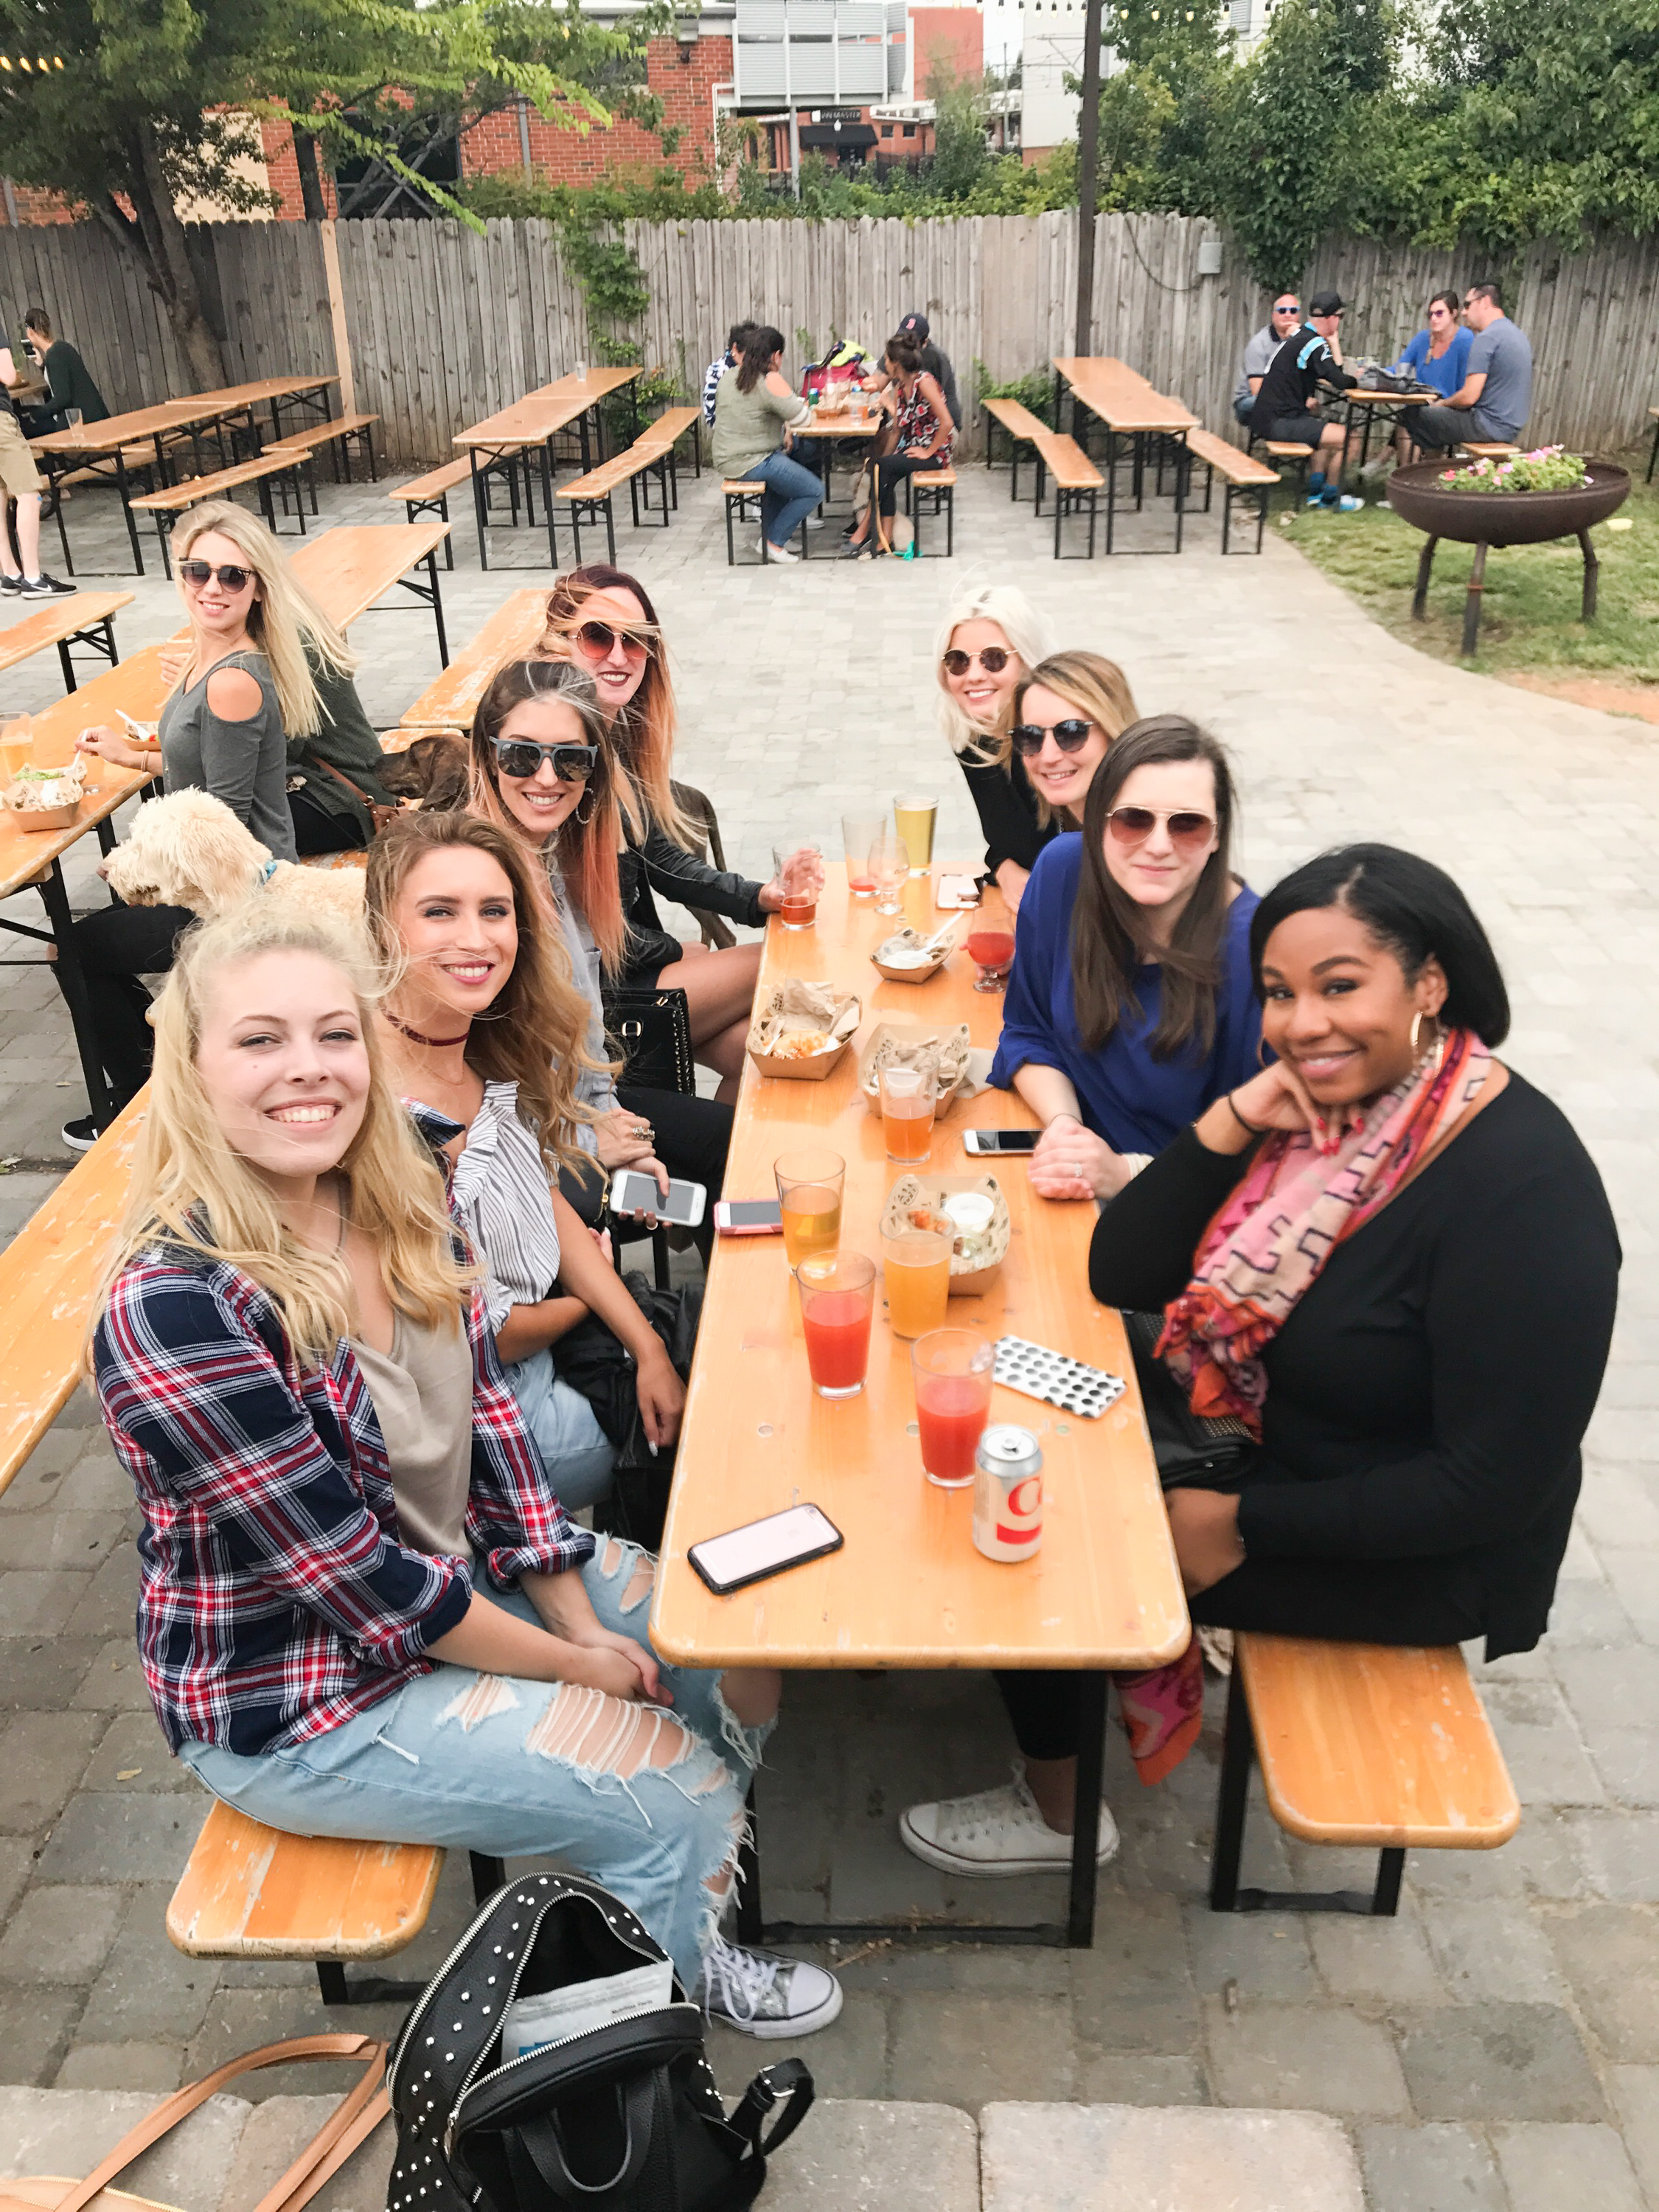 sycamore-brewing-south-end-charlotte-nc-tin-kitchen-food-truck-tacos-bloggers